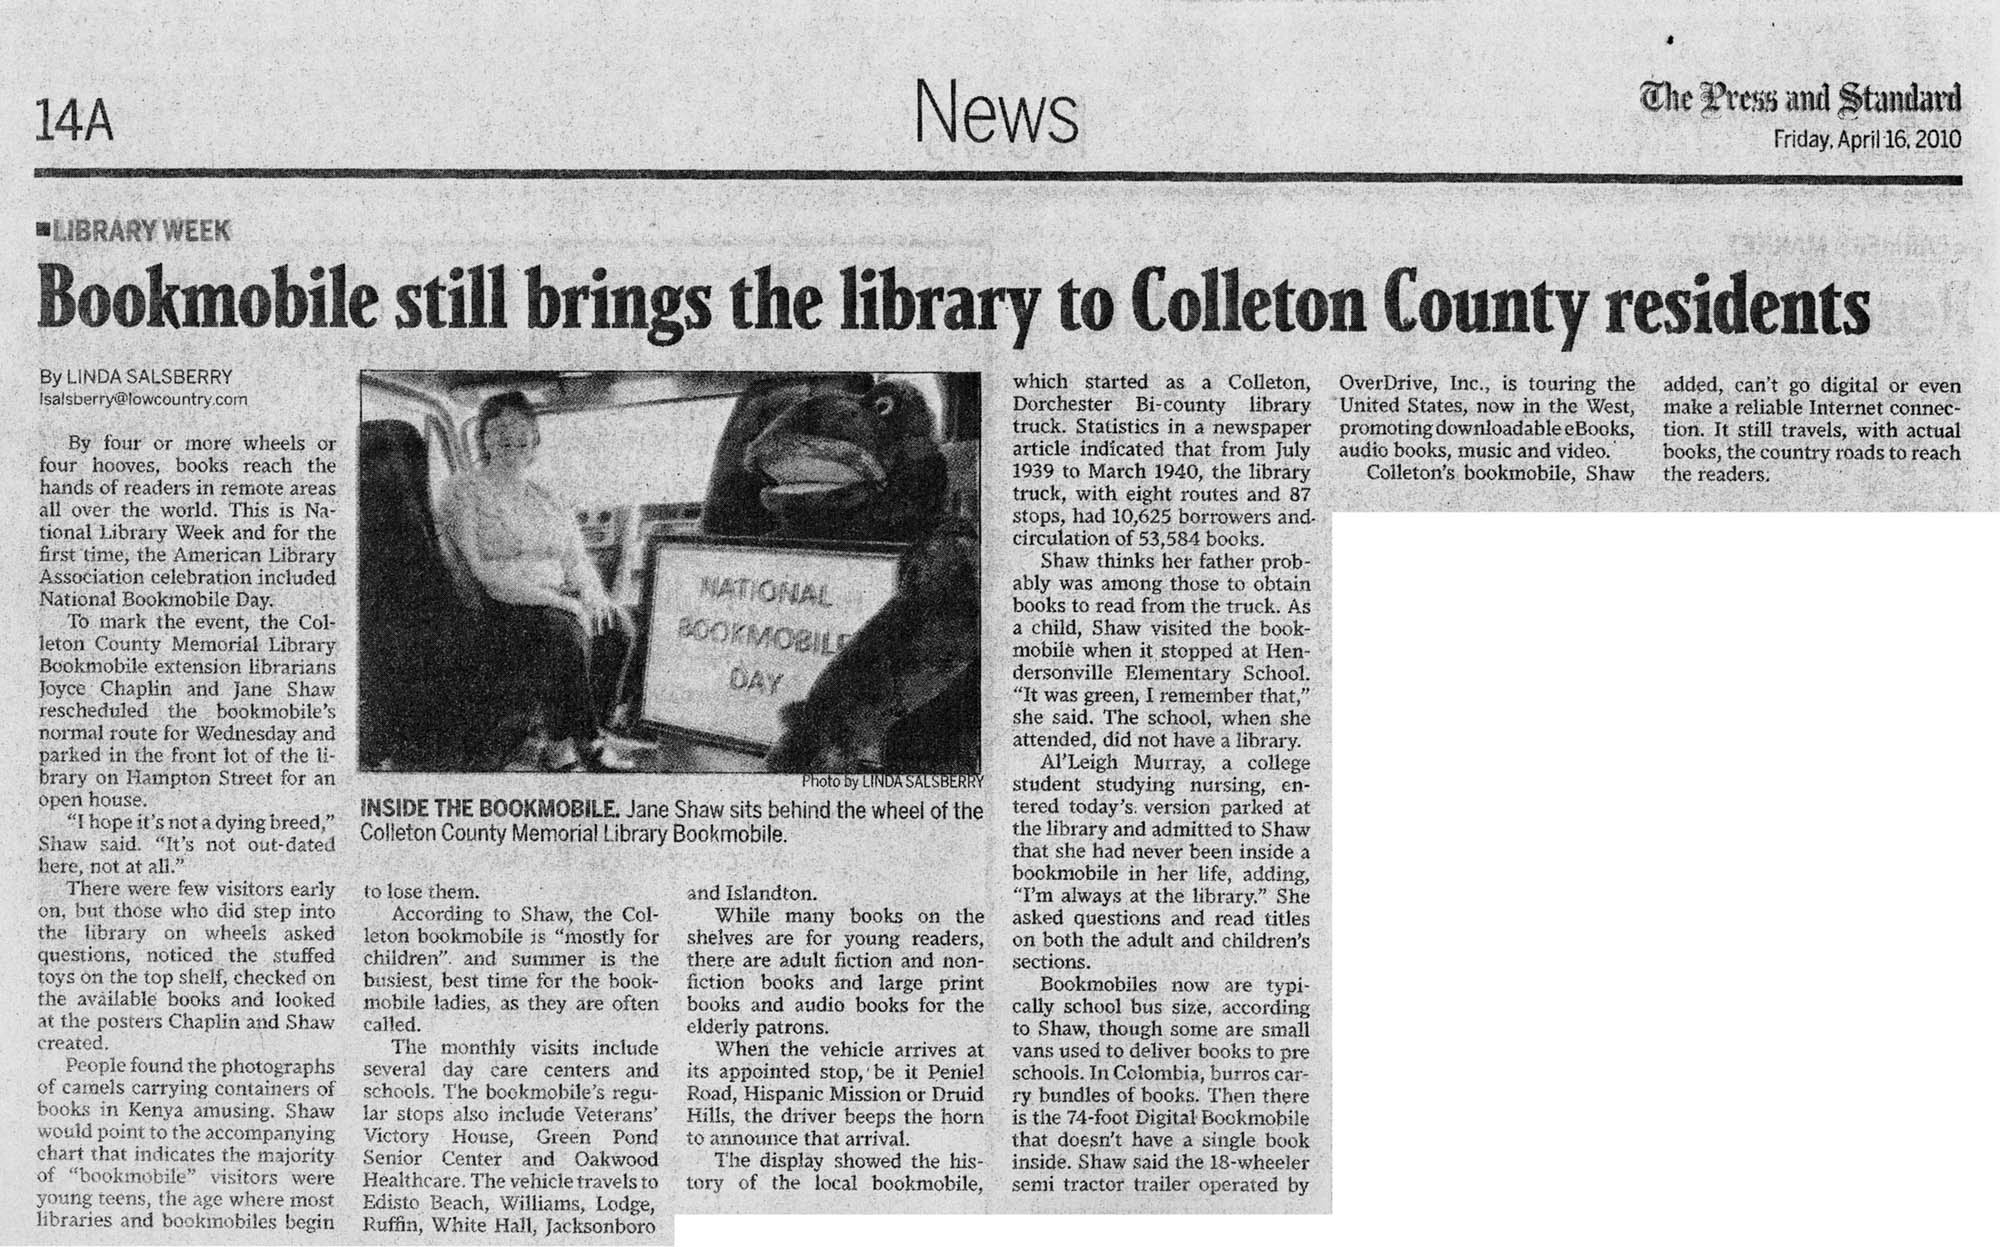 Bookmobile Still Brings the Library to Colleton County Residents